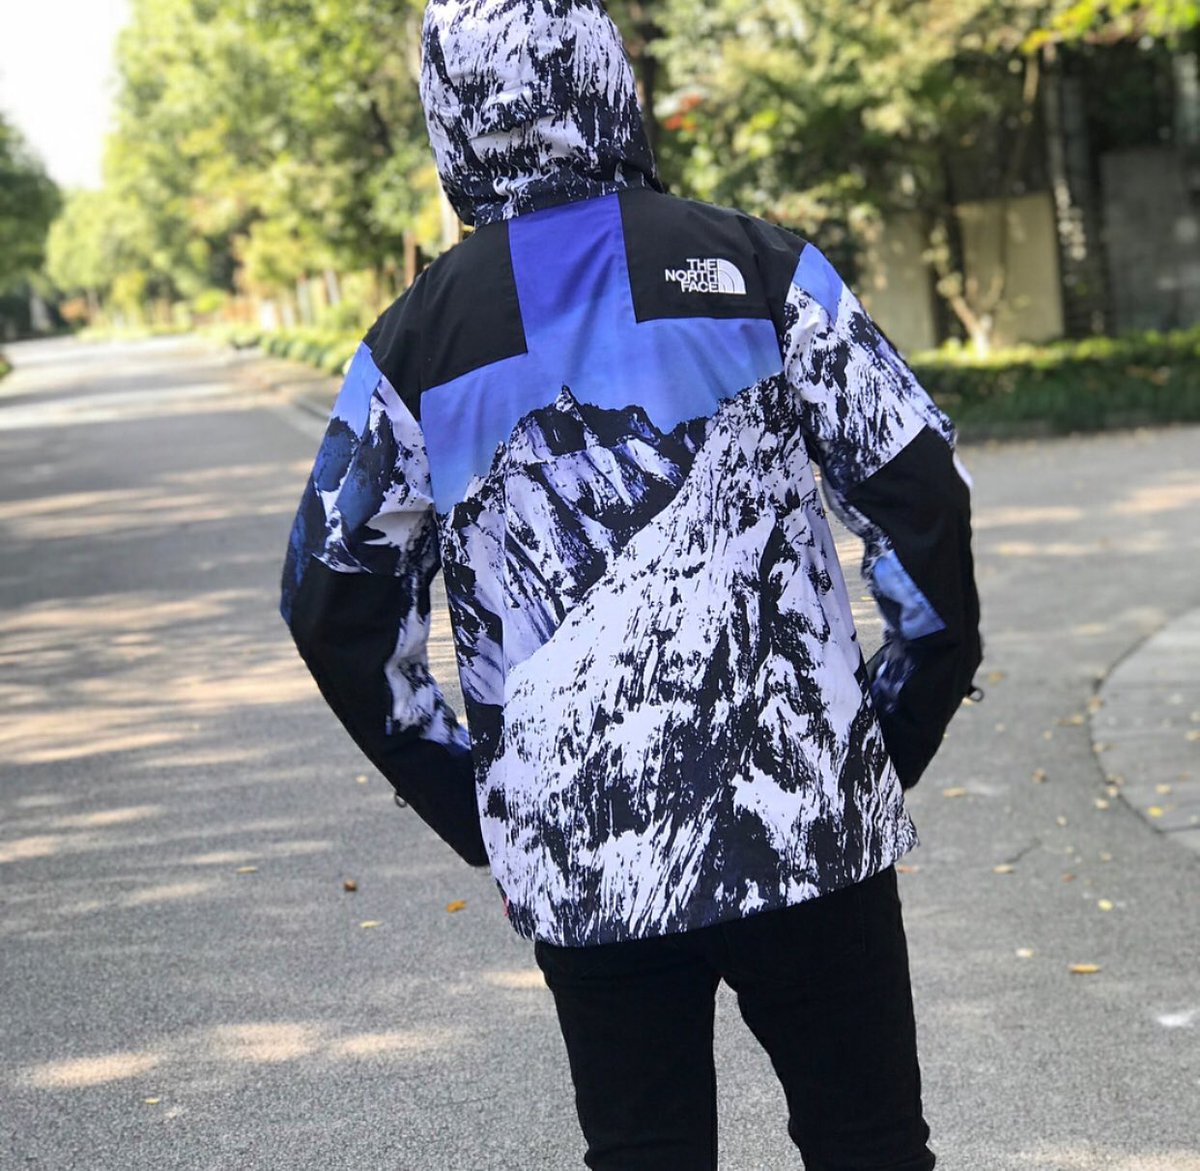 Supreme Tnf Part 2 Tee Leak Rumored